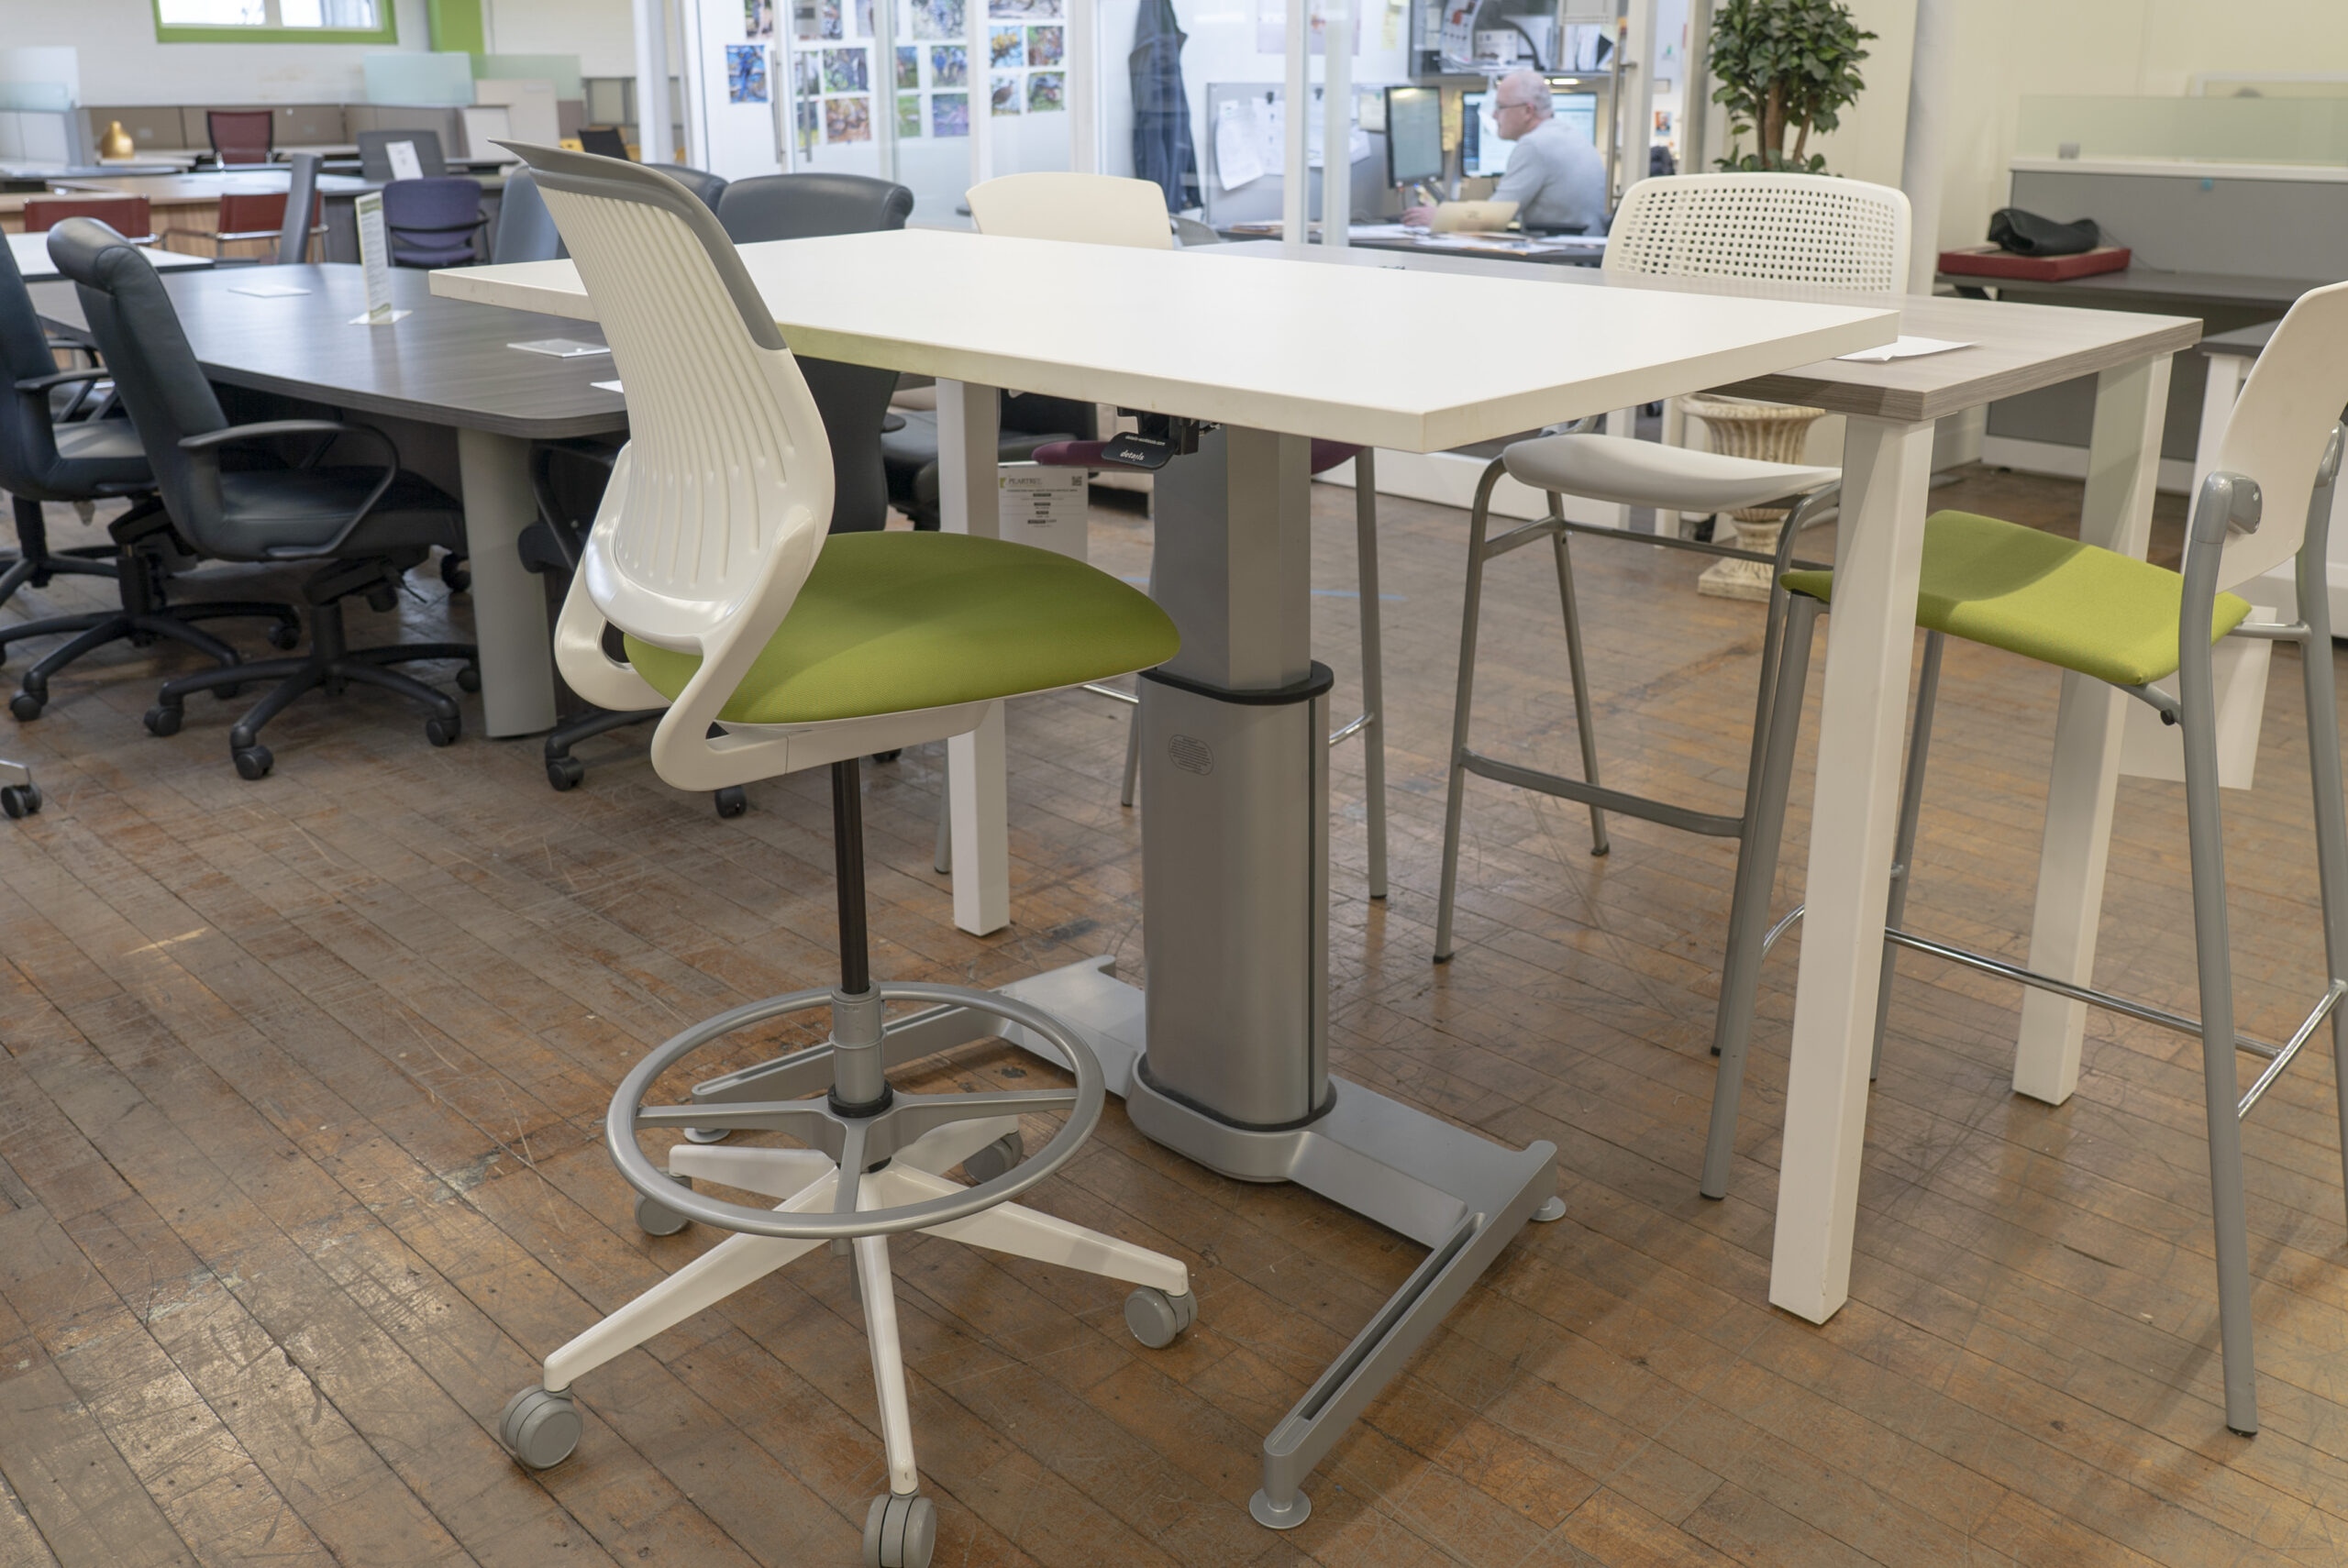 Steelcase Airtouch Pneumatic Height Adkj